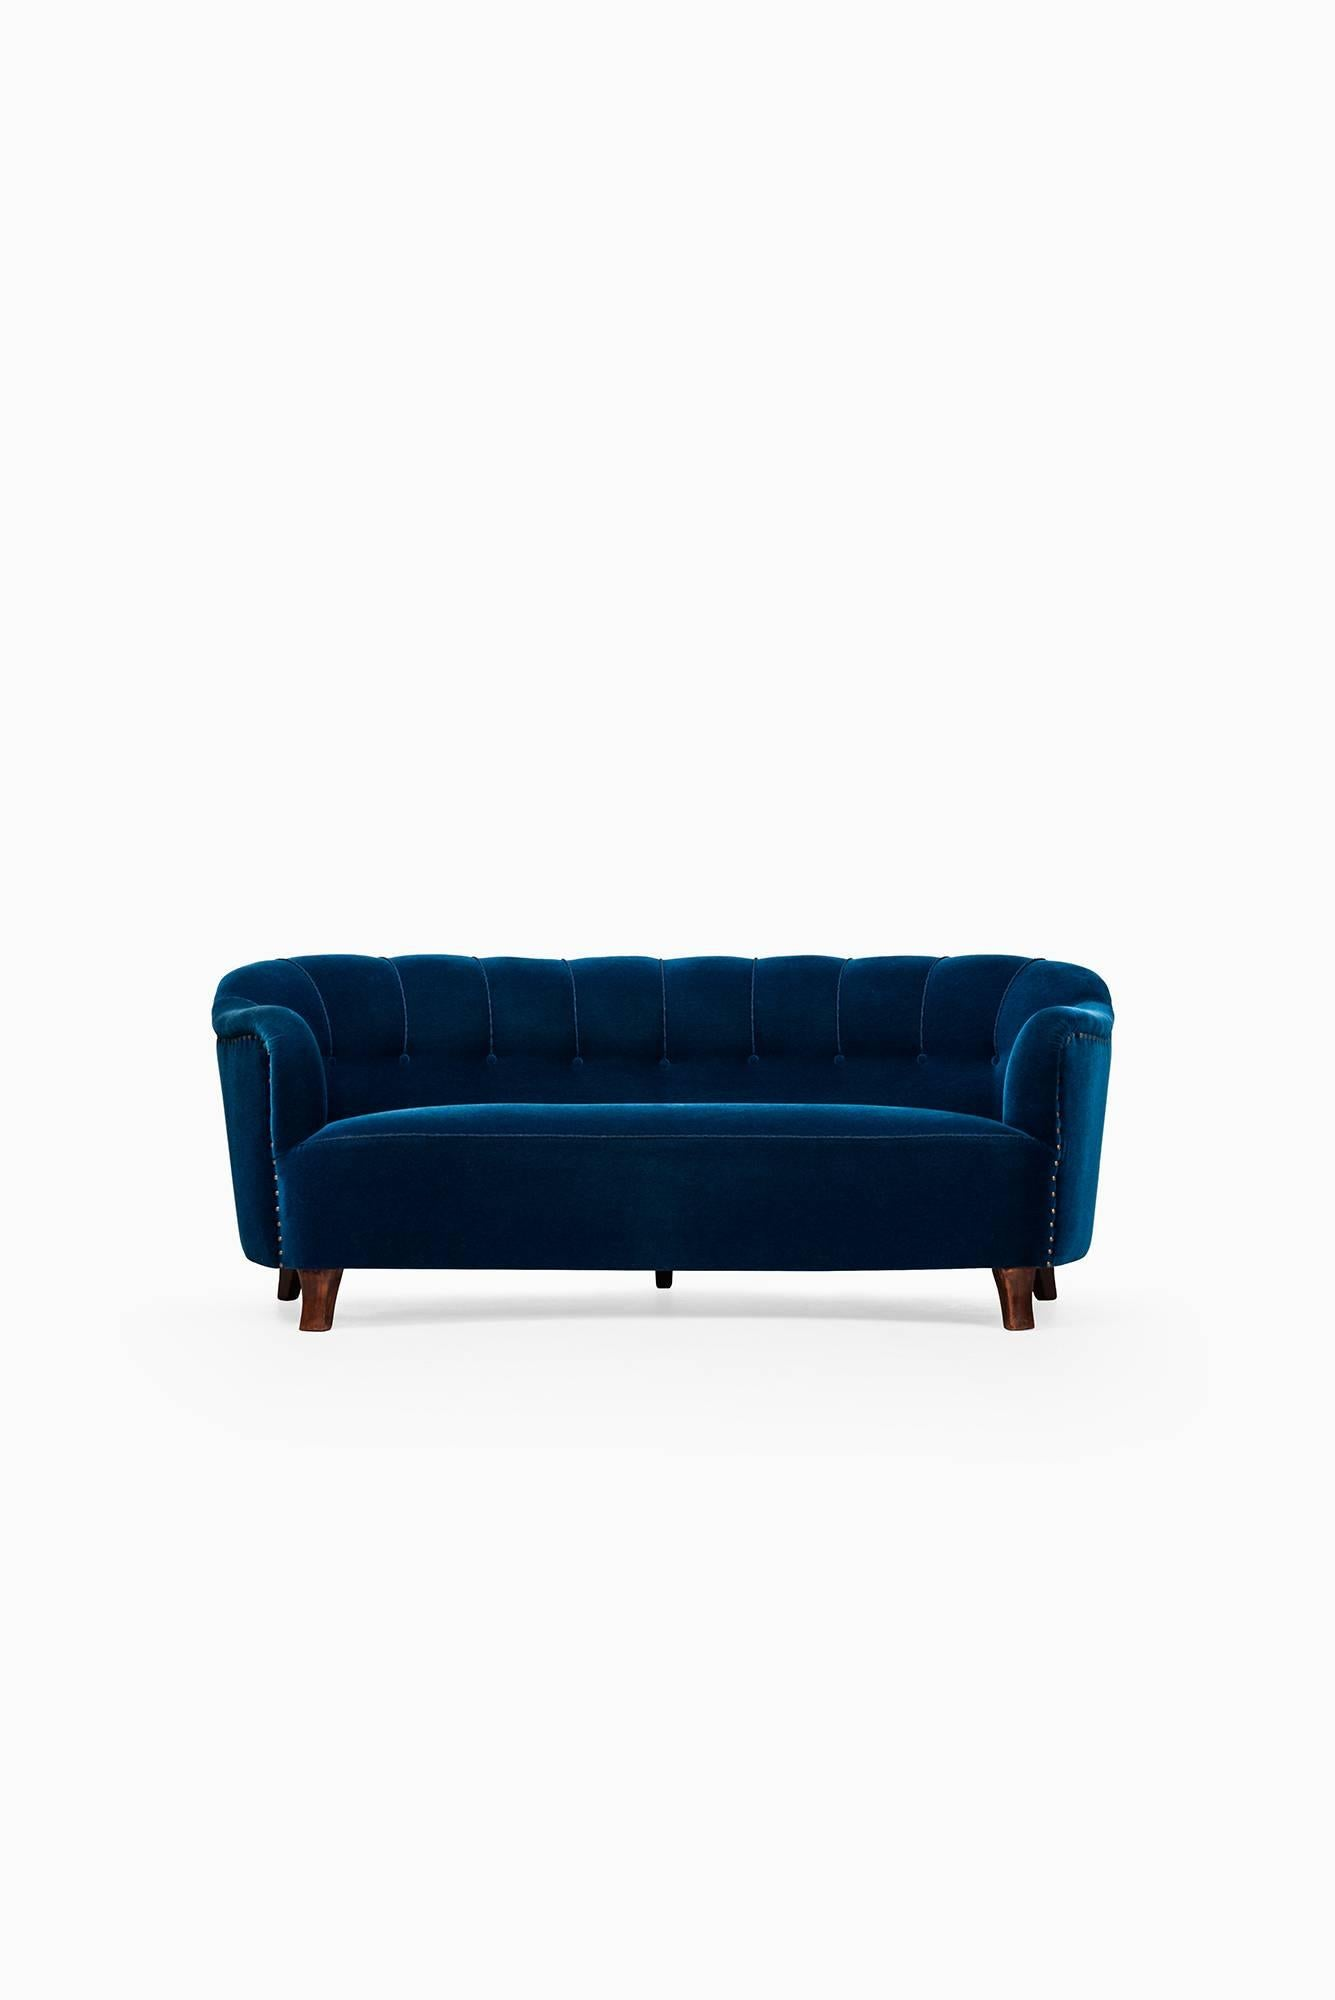 Otto Sale Sofa Curved Sofa In Blue Velvet Attributed To Otto Schulz